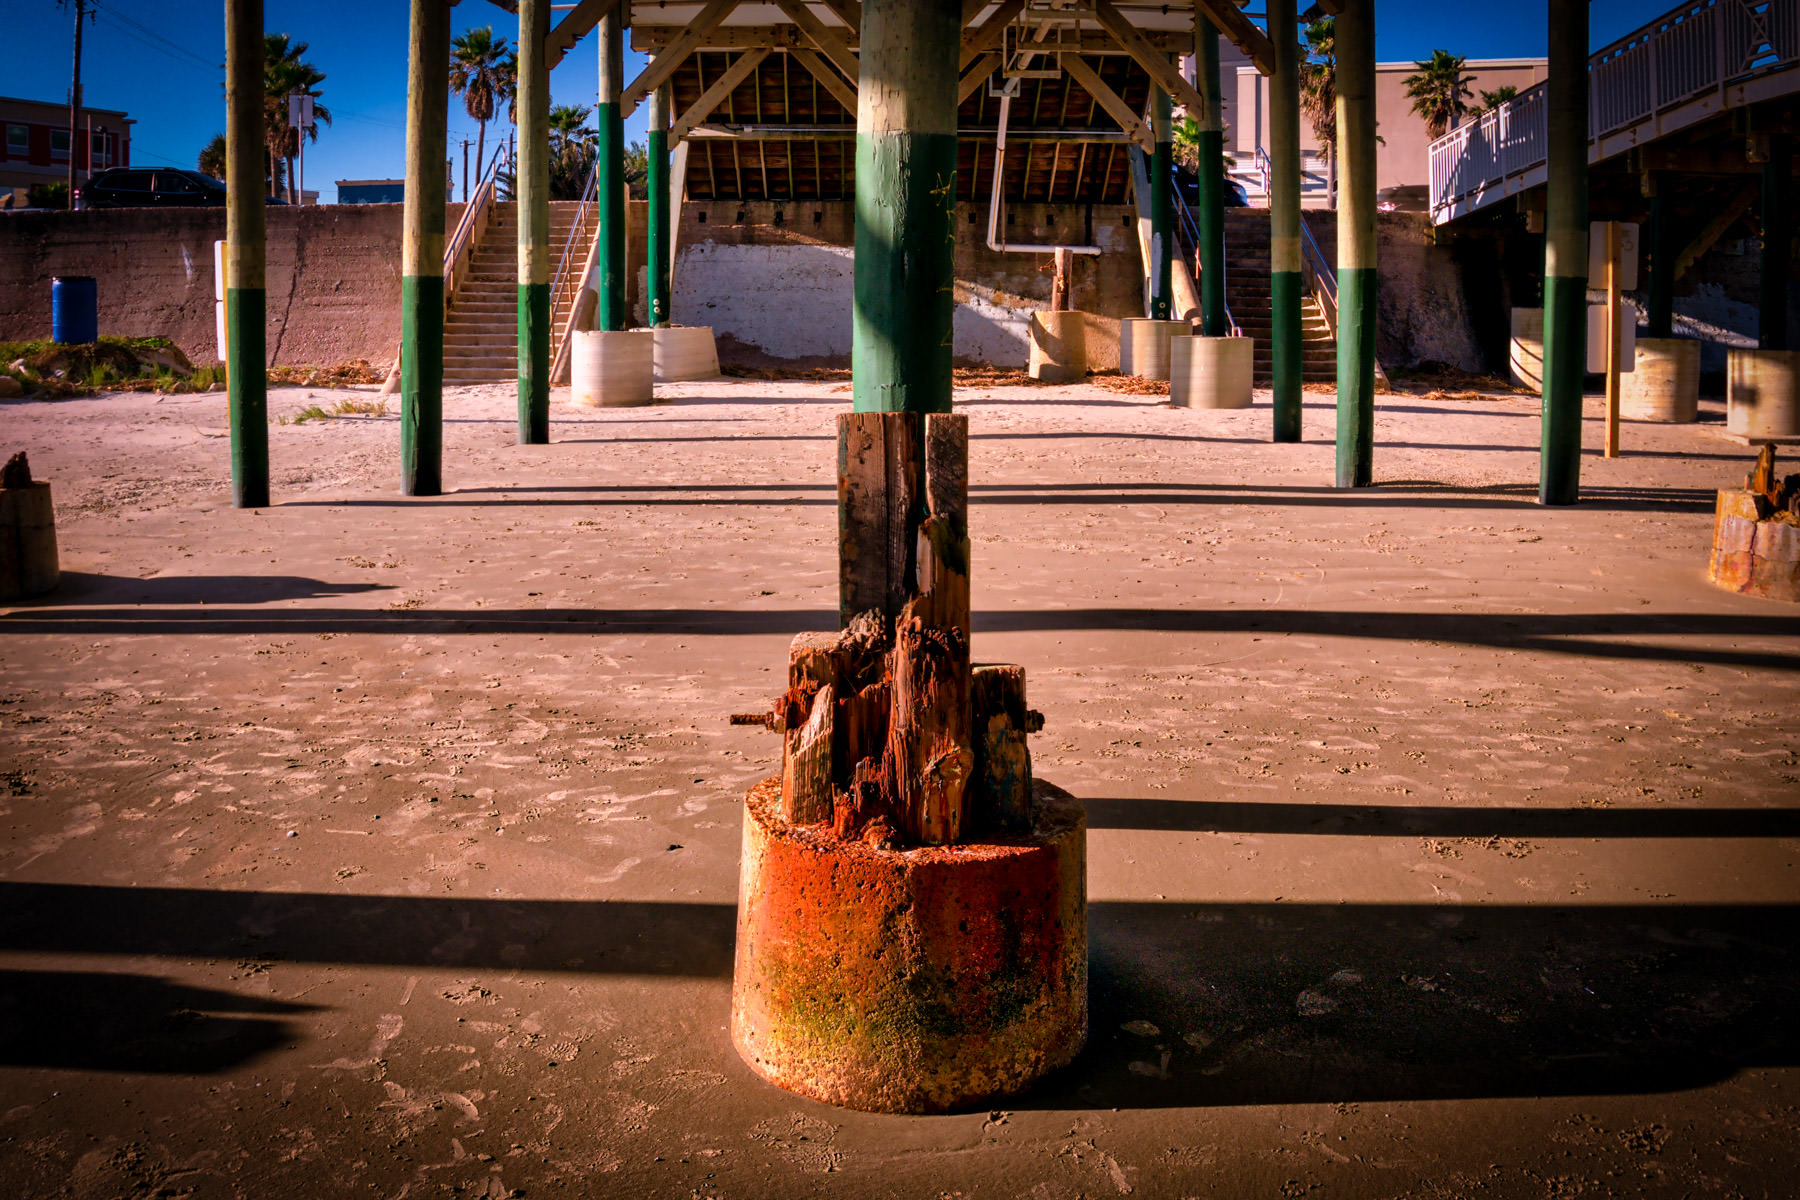 A well-worn piling supporting Galveston, Texas' Pleasure Pier.